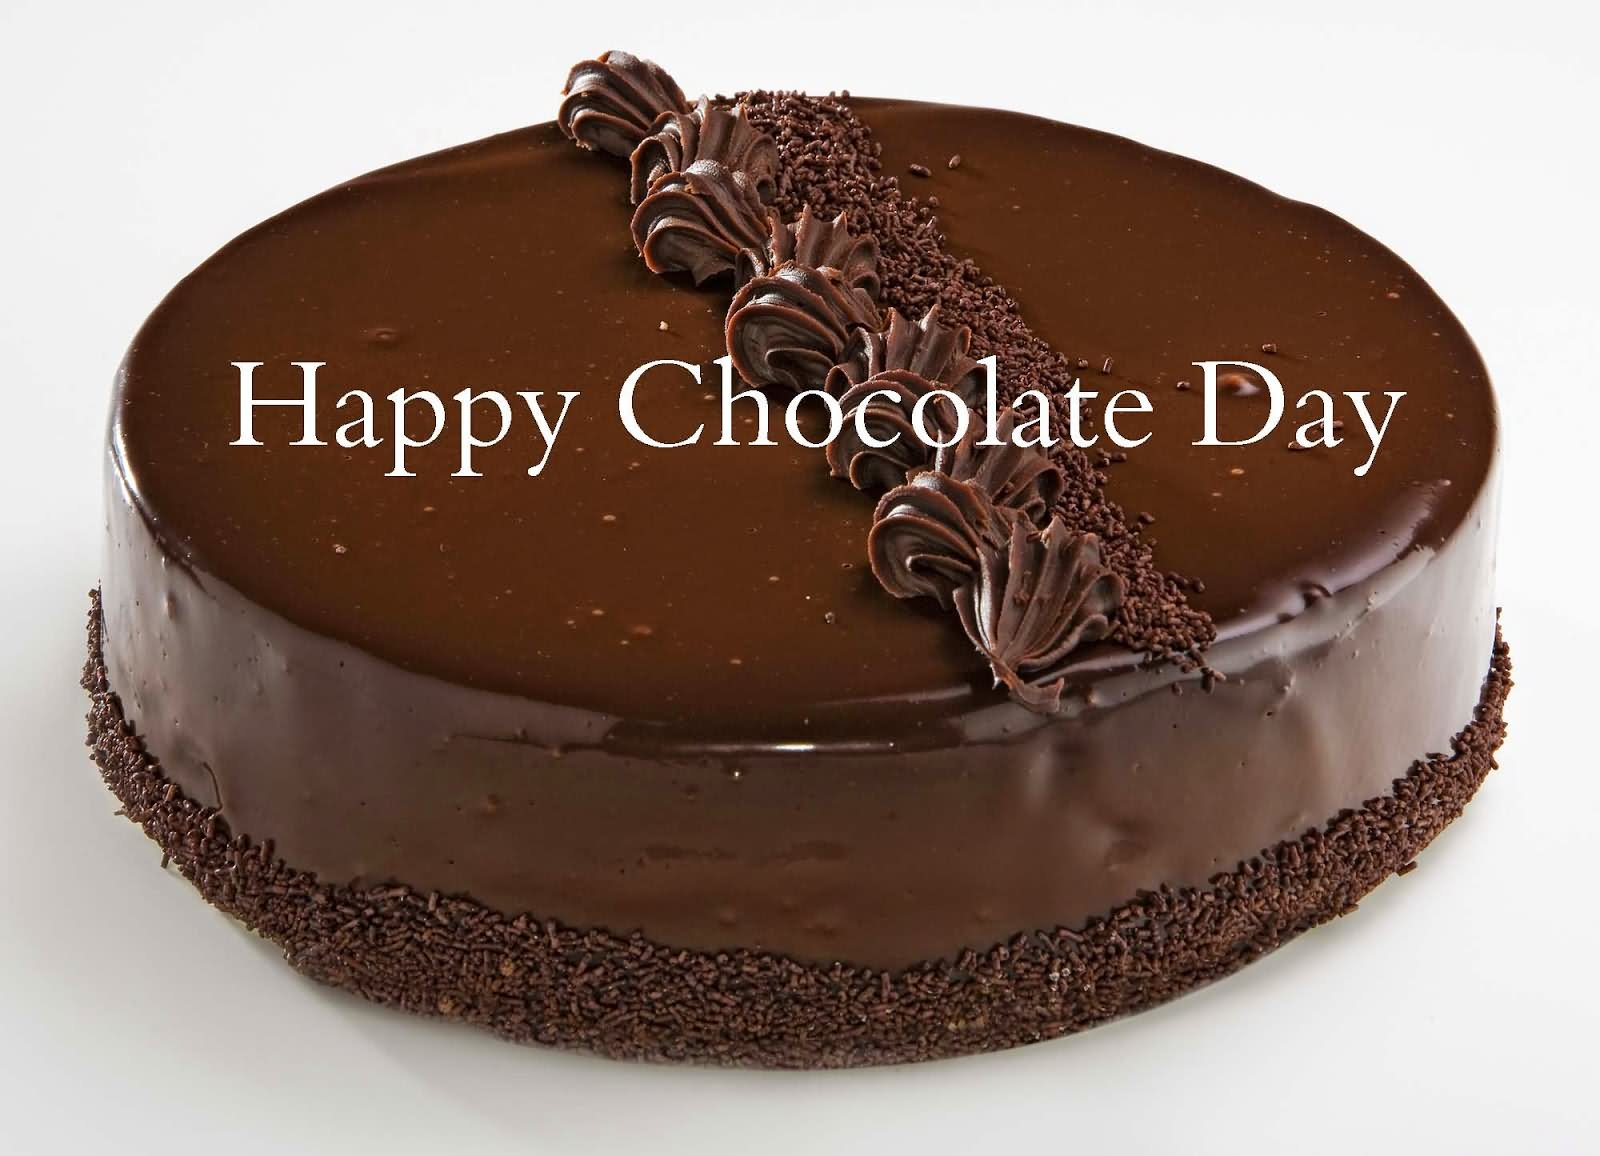 Happy Chocolate Day Chocolate Cake Picture